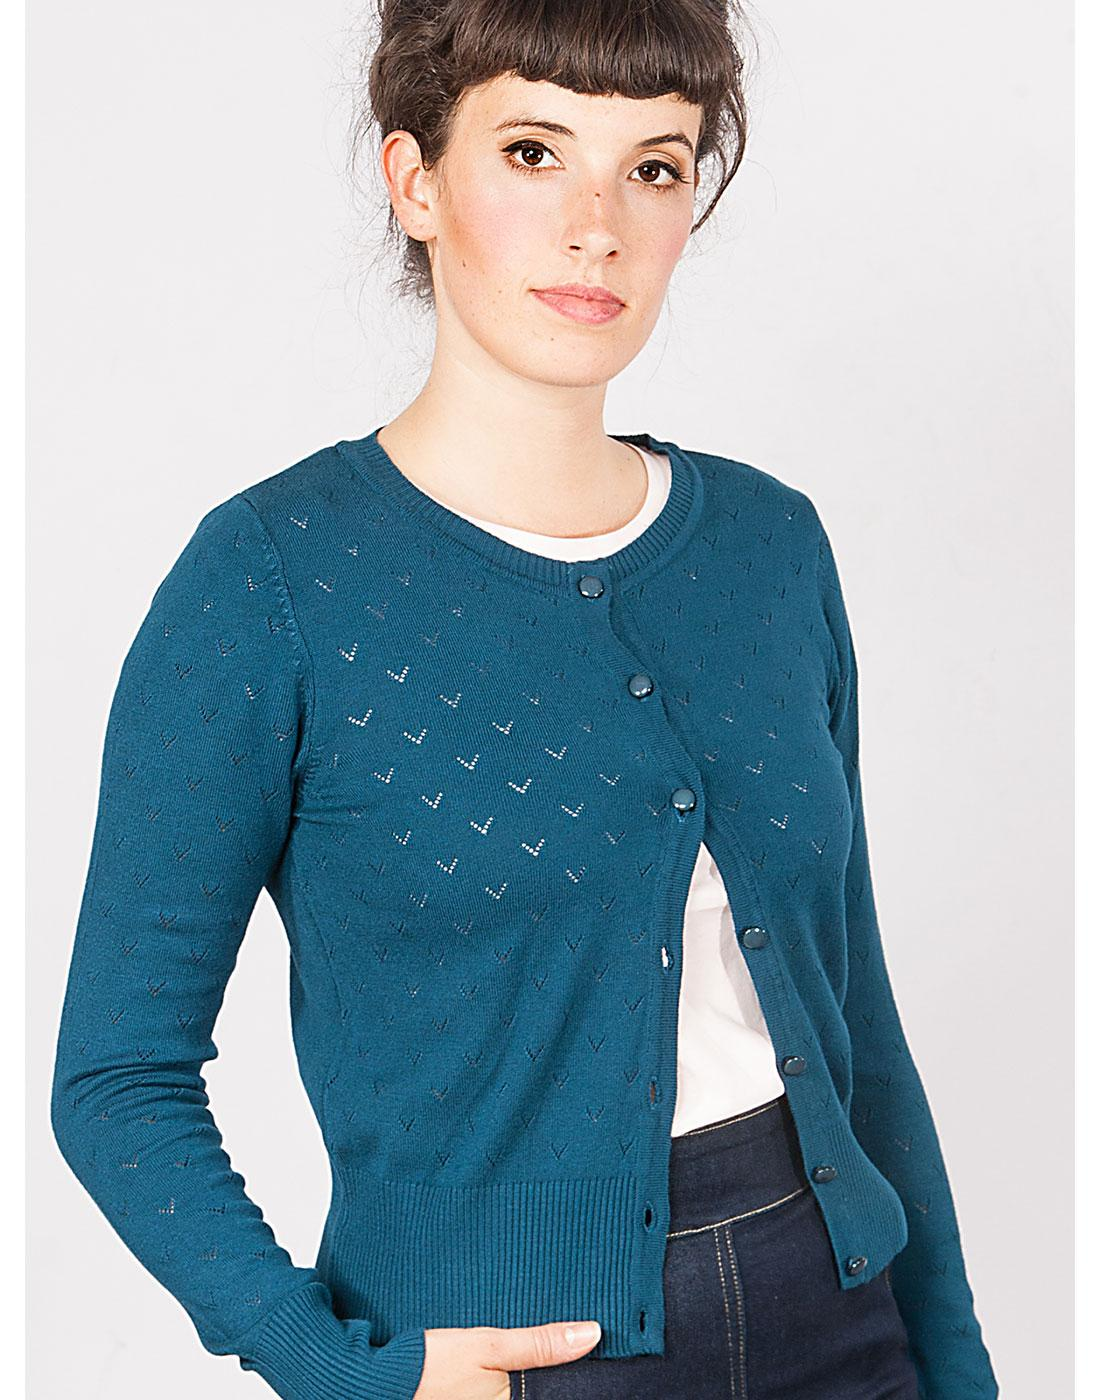 Lovelyn MADEMOISELLE YEYE Retro Cardigan in Teal